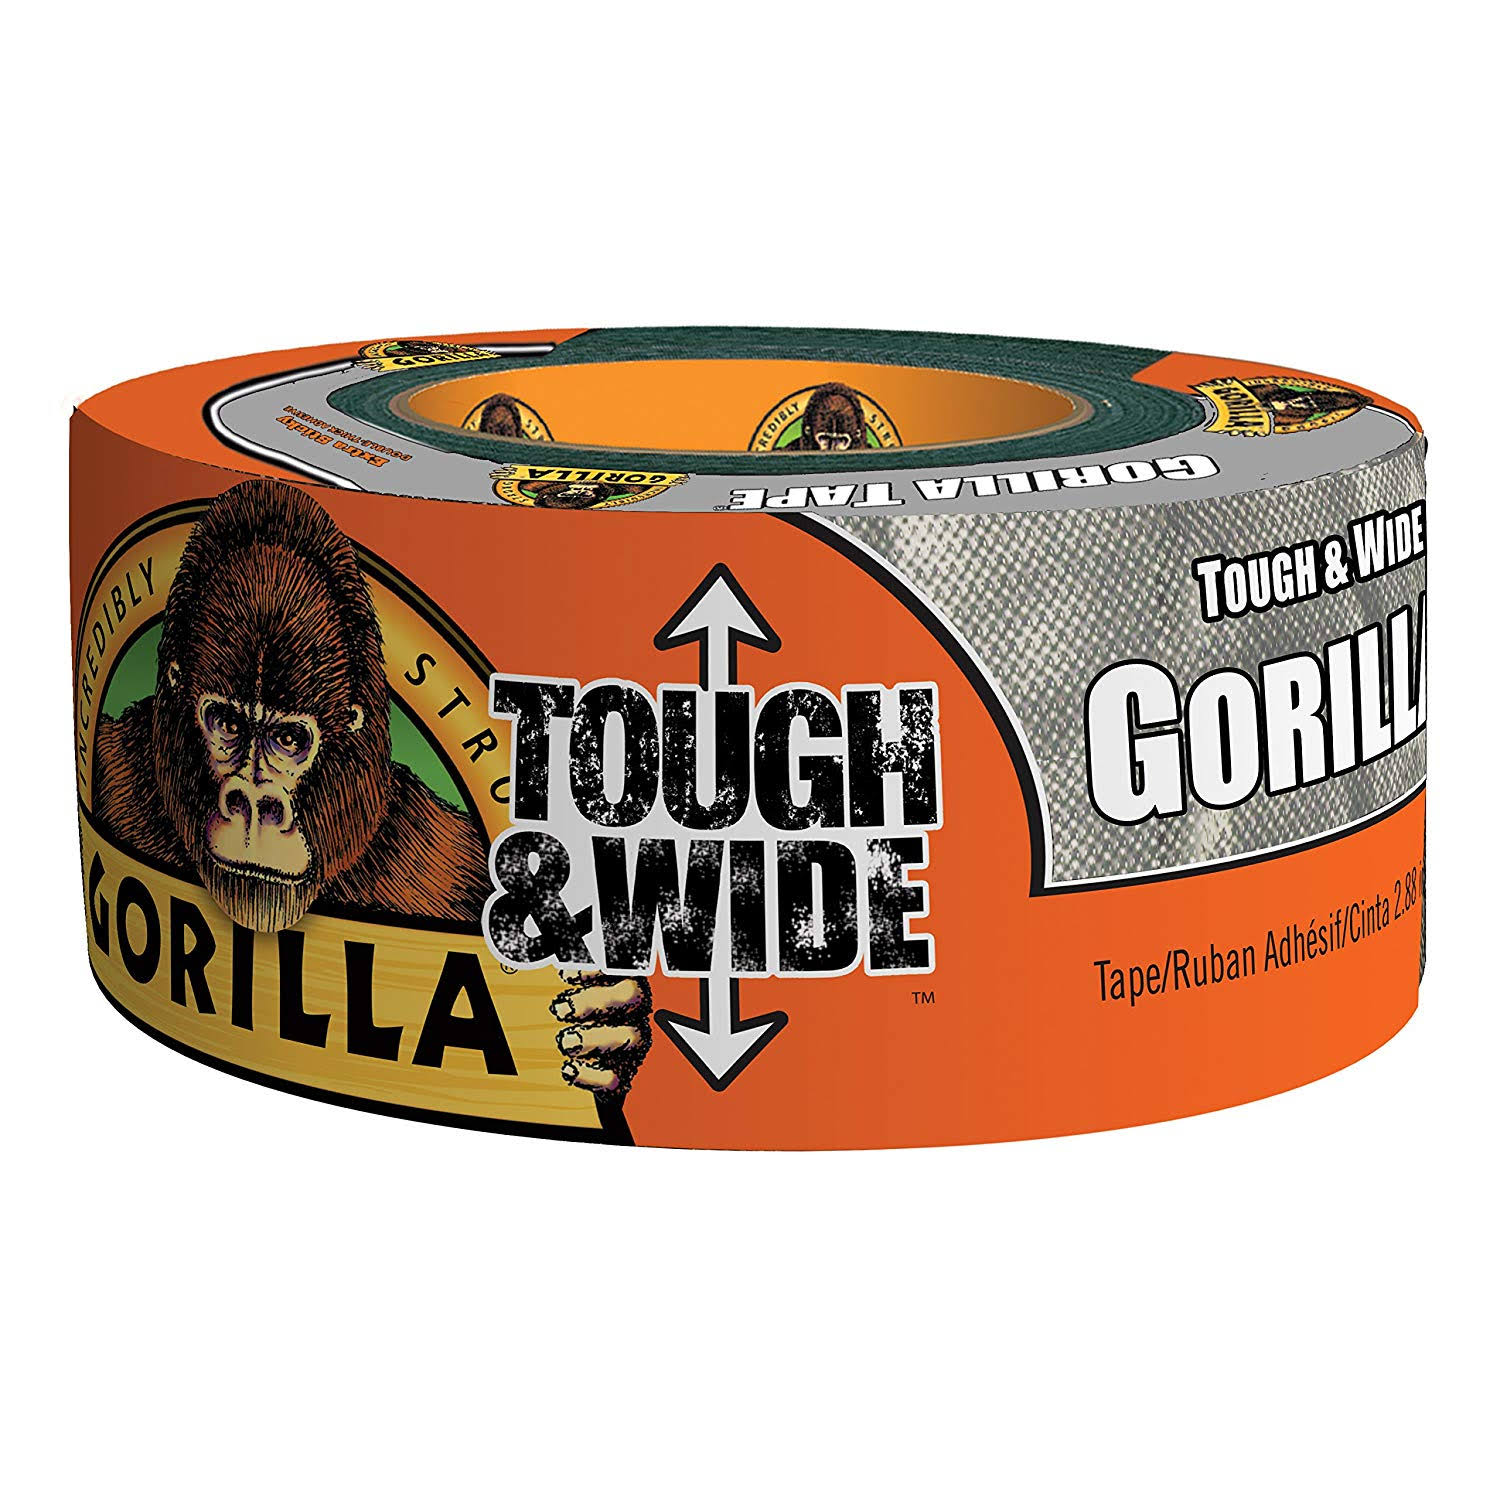 "Gorilla Silver Tough and Wide Tape - 2.88"" x 30yds"